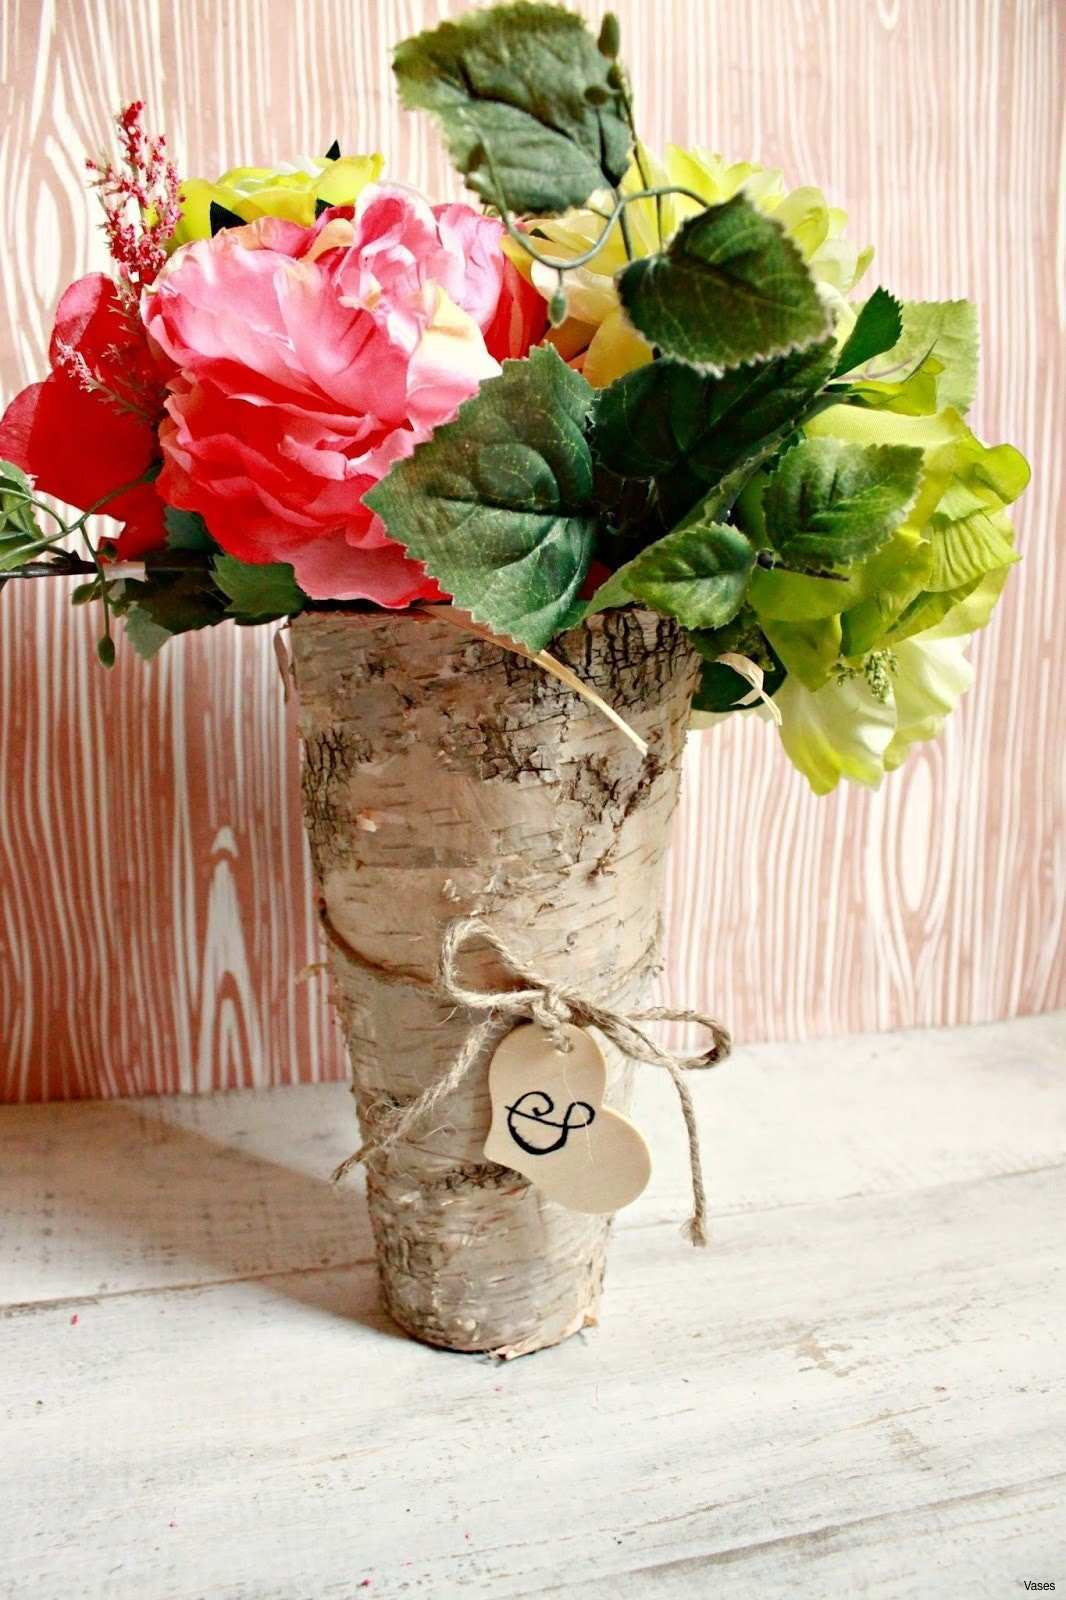 tin can vase ideas of build a planter box for vegetables luxury wooden wedding flowers h intended for build a planter box for vegetables luxury wooden wedding flowers h vases diy wood vase i